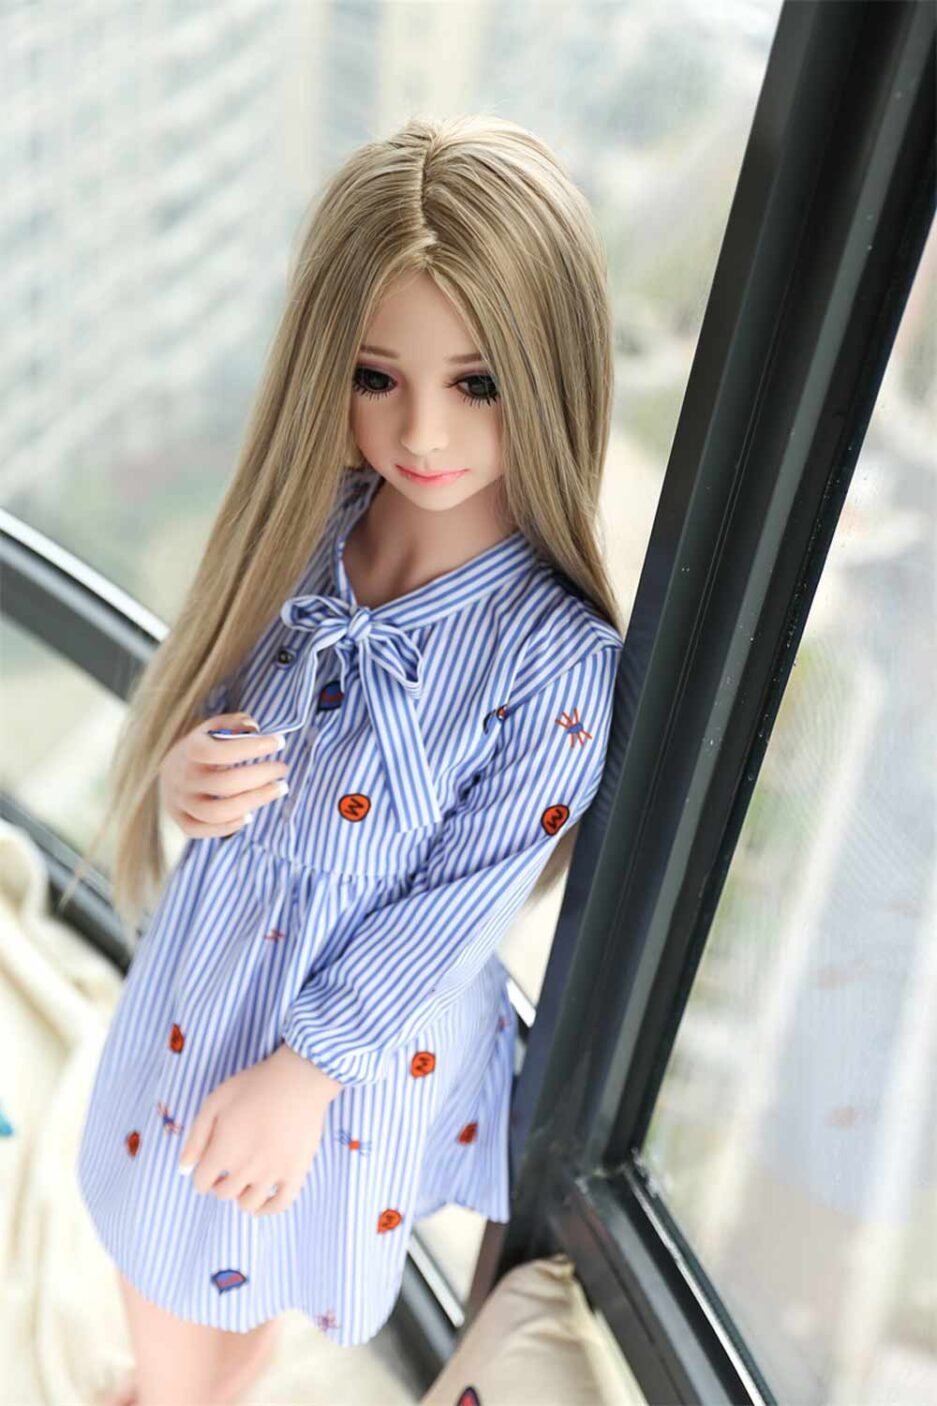 Mini sex doll with hands and tie